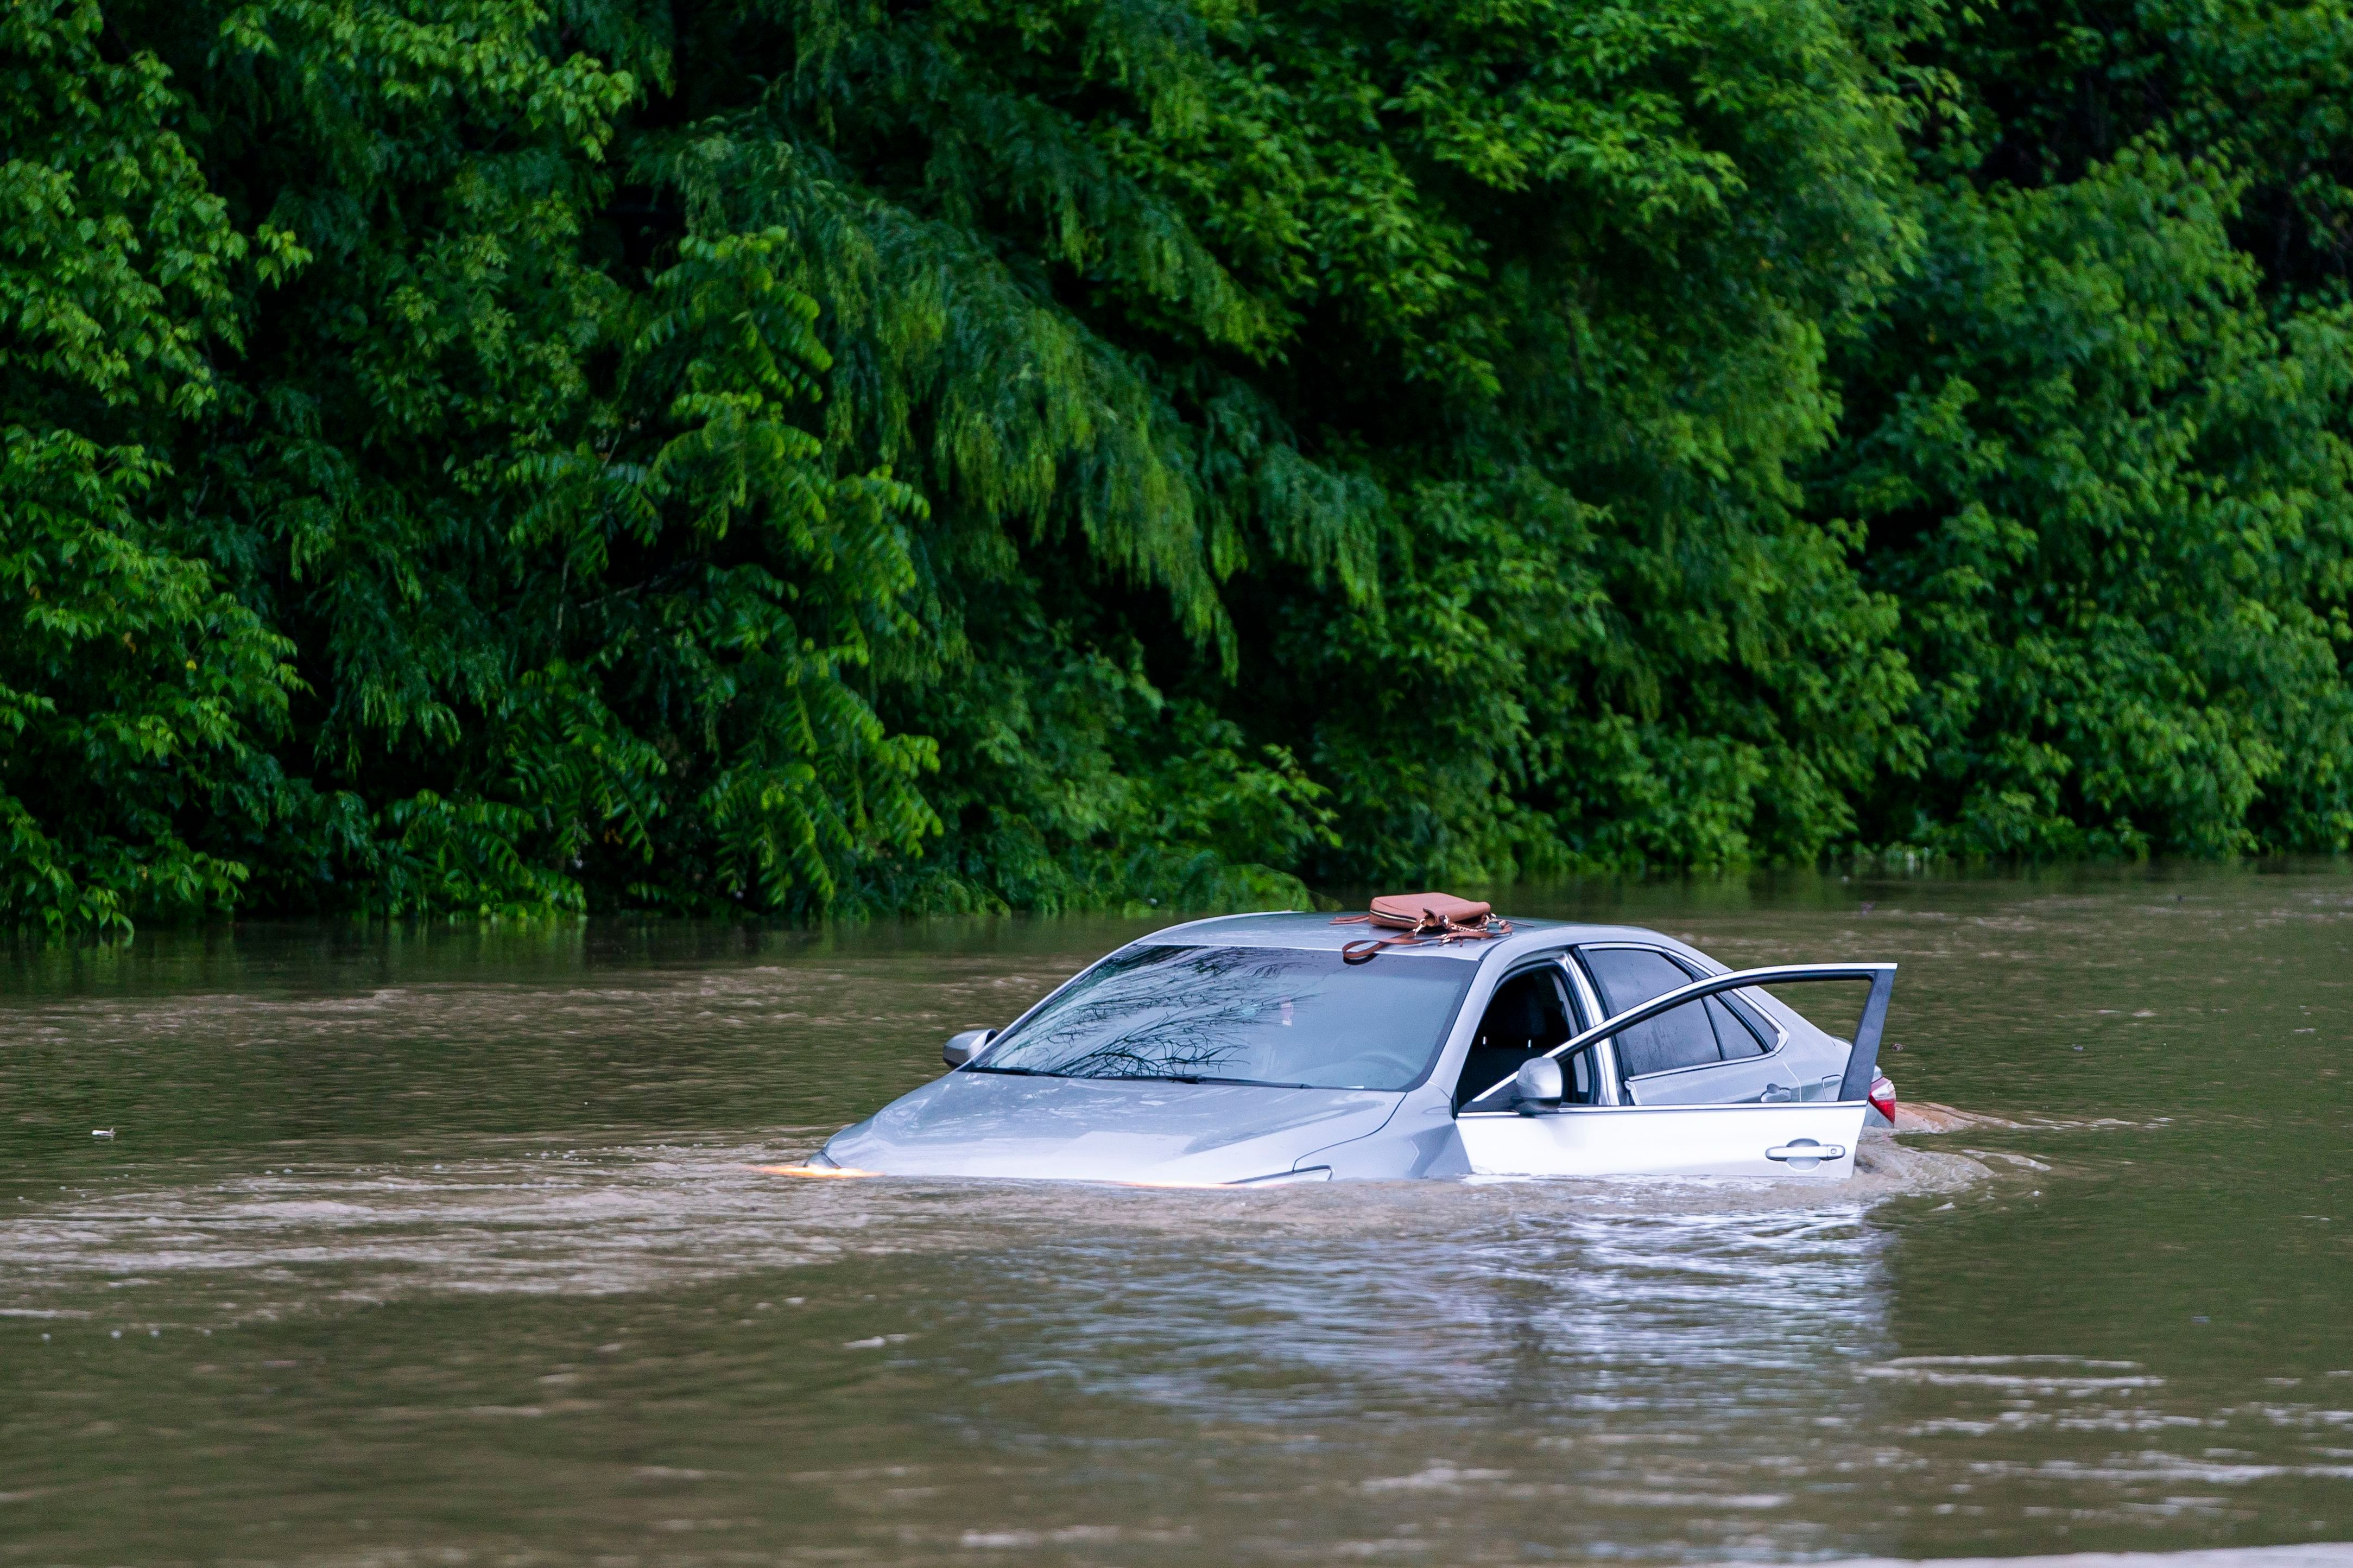 A flooded car on Columbia Pike after a flash flood in Oakland Mills, Maryland, USA, 27 May 2018. The National Weather Service stated as much as 9.5 inches of rain fell in the area. Flash floods ravage Maryland, Oakland Mills, USA - 27 May 2018